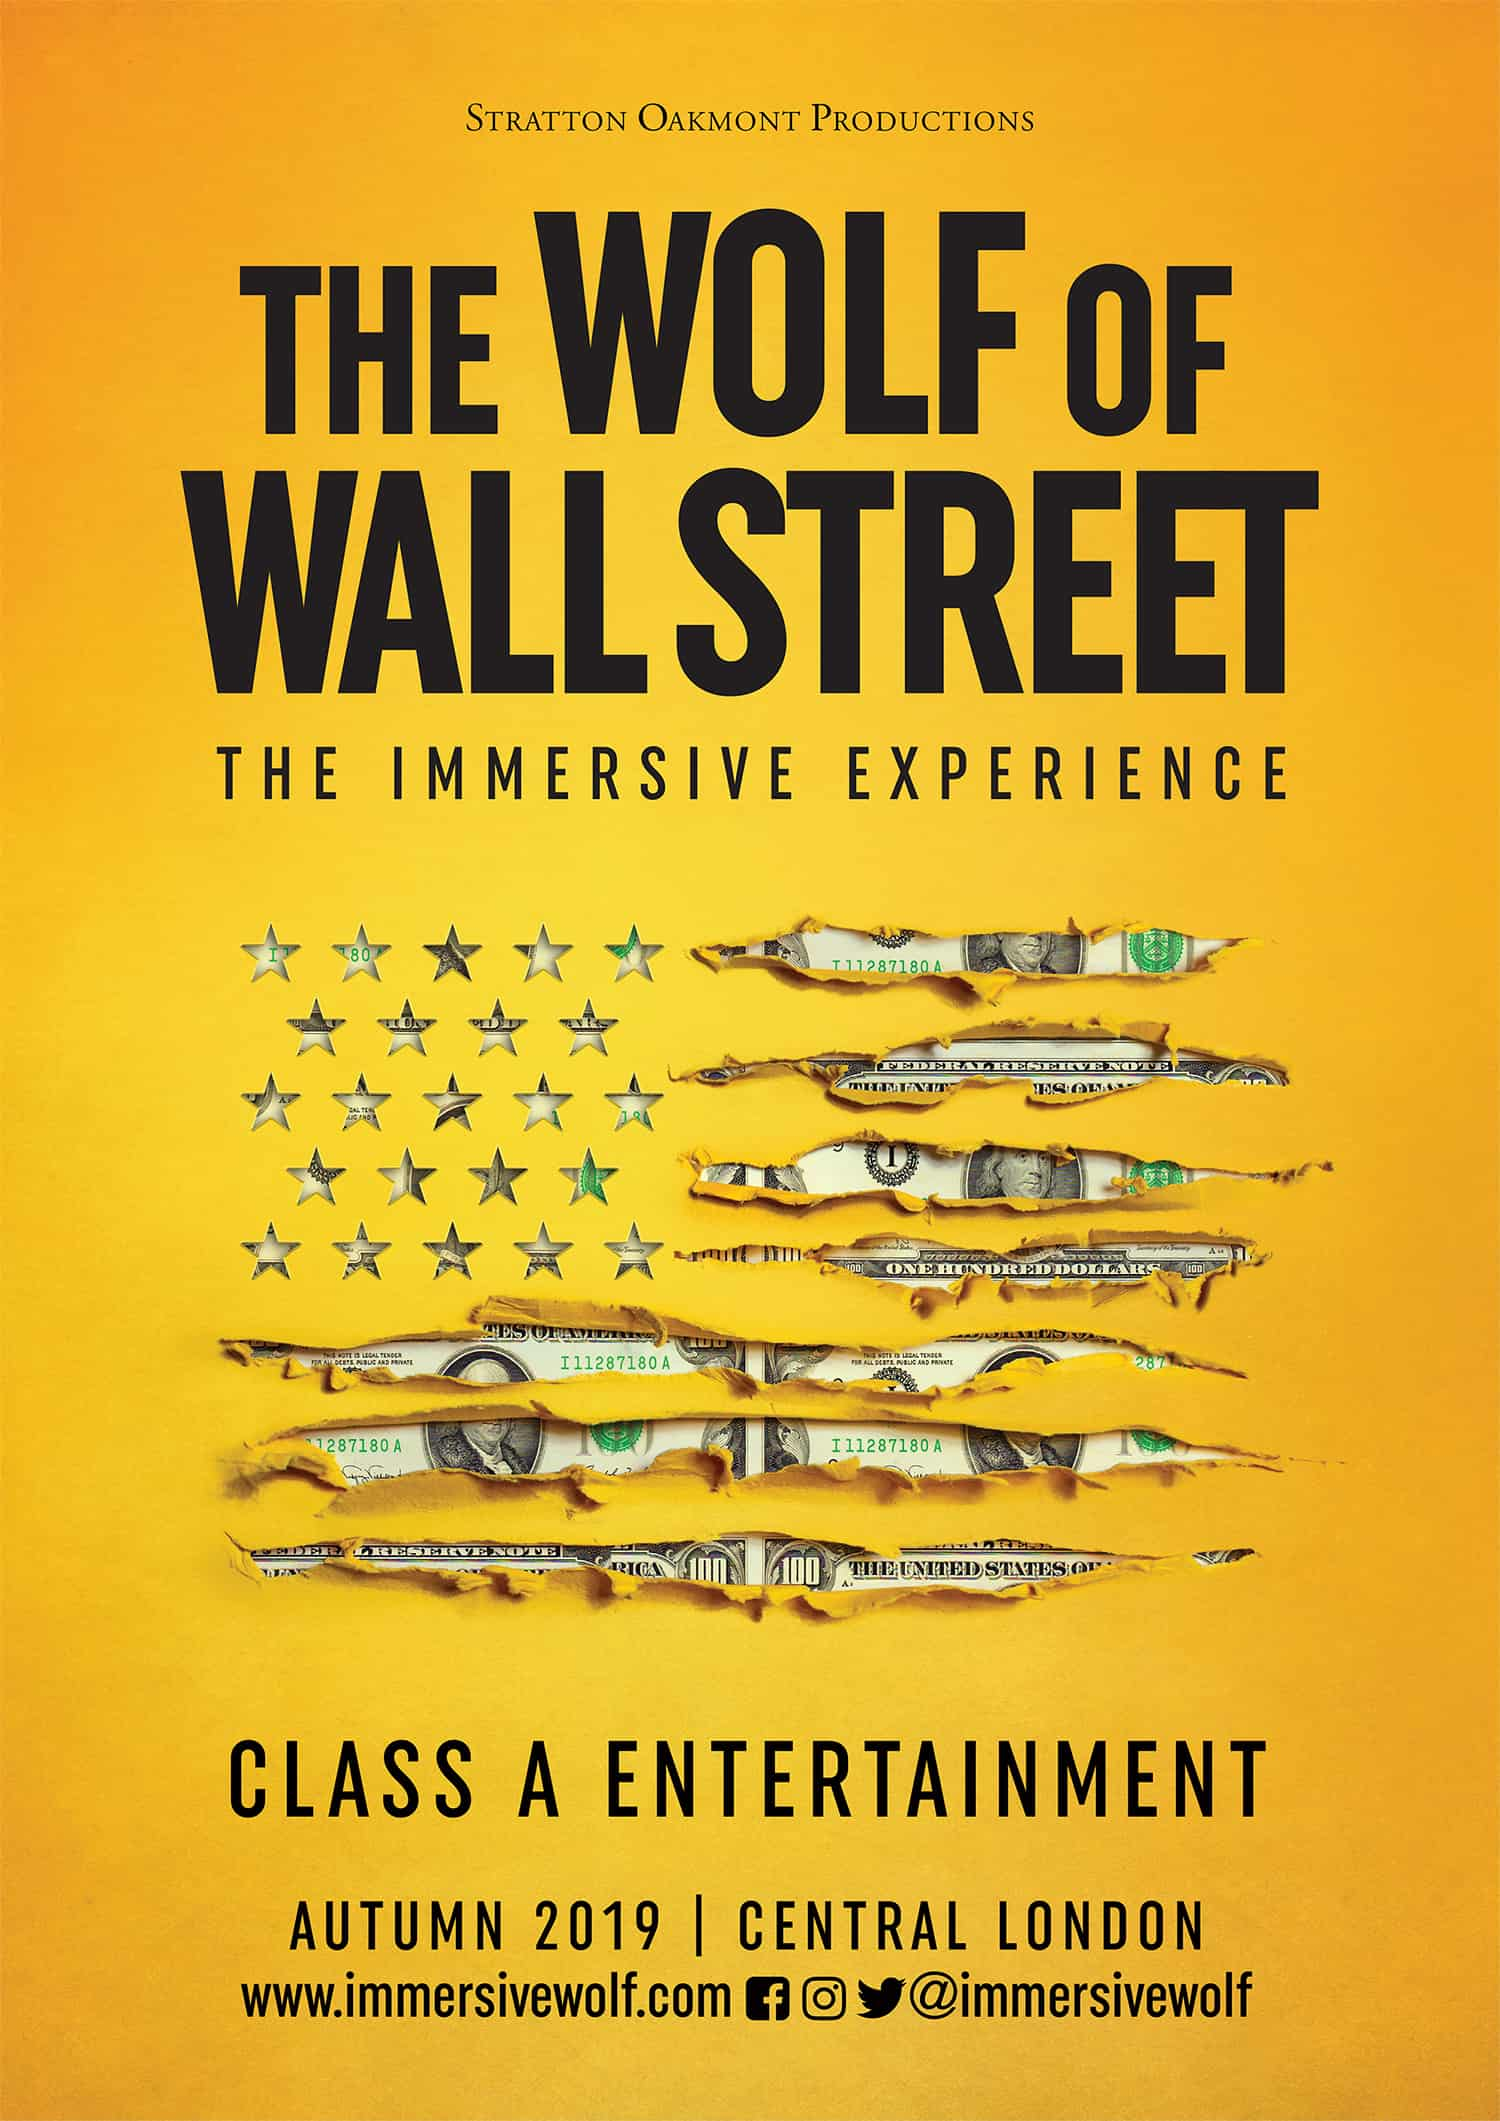 wolf of wall street immersive experience london